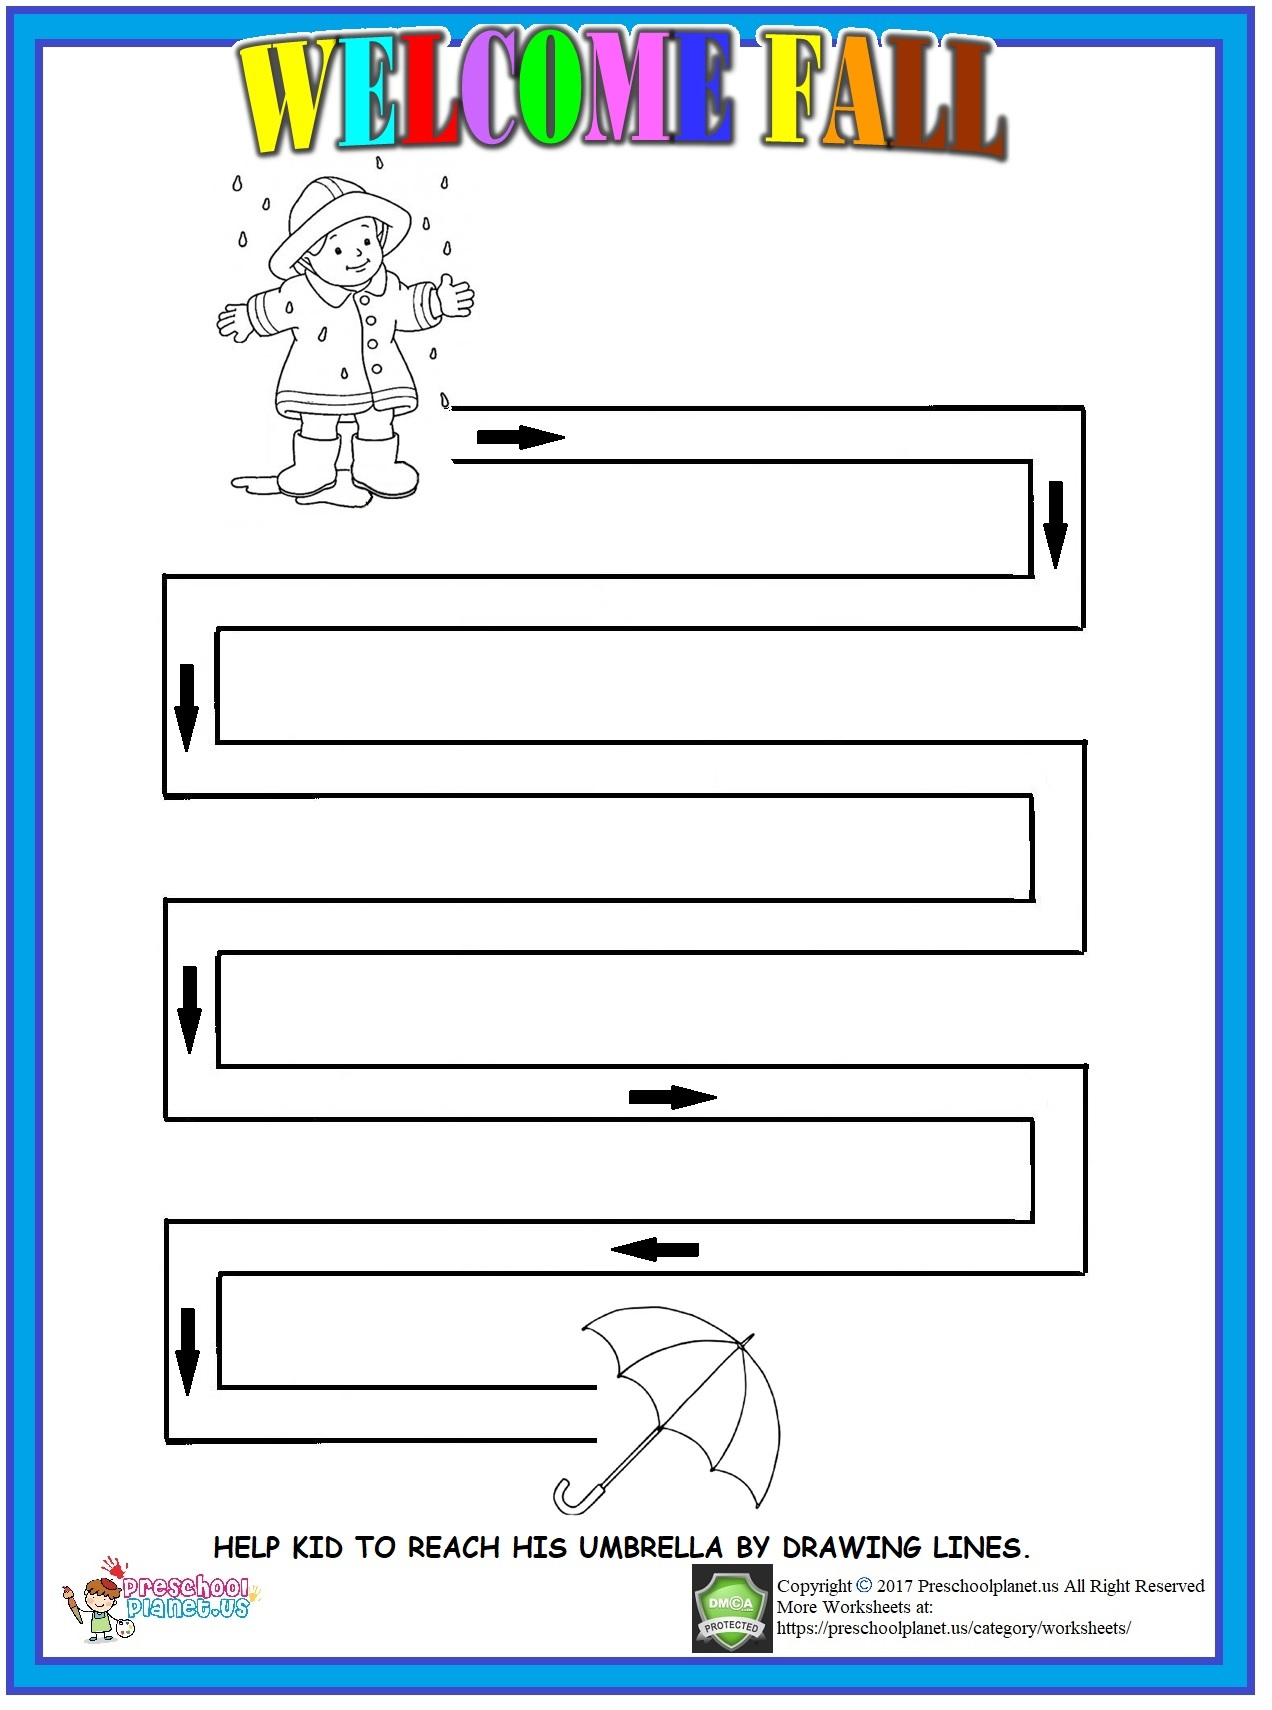 Fall Maze Worksheet For Kids Preschoolplanet